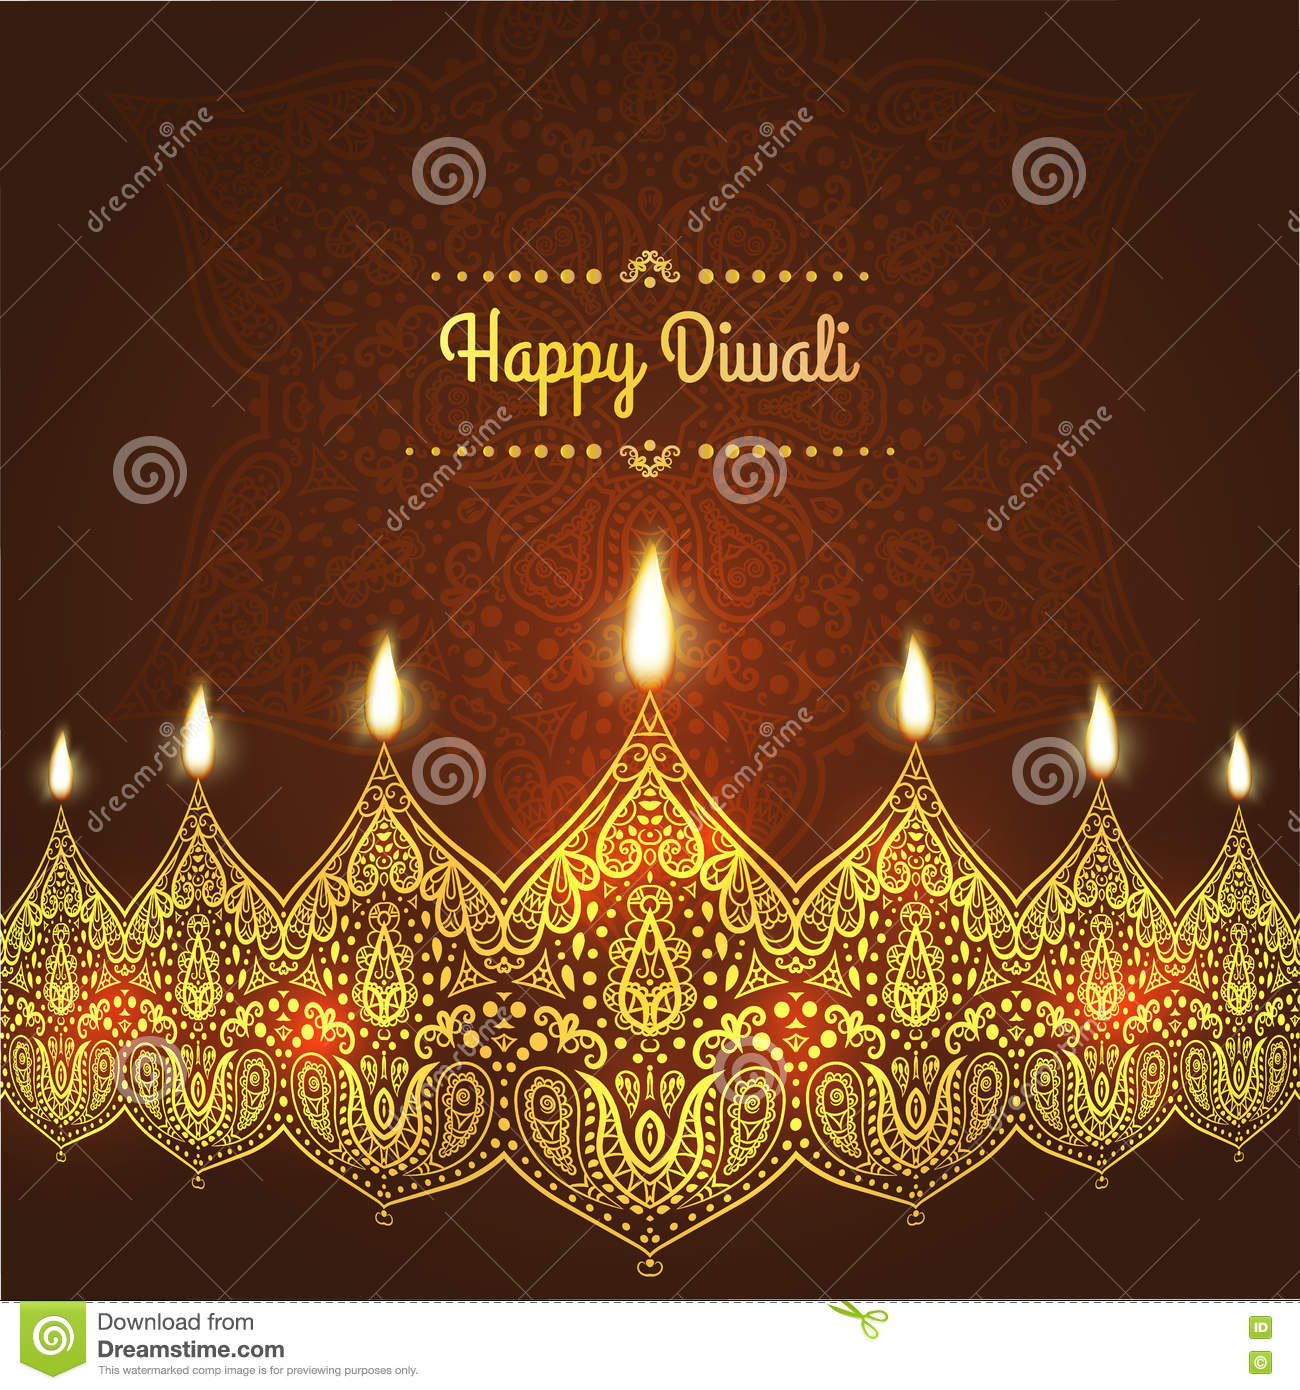 Happy diwali greeting card design for diwali festival with download comp m4hsunfo